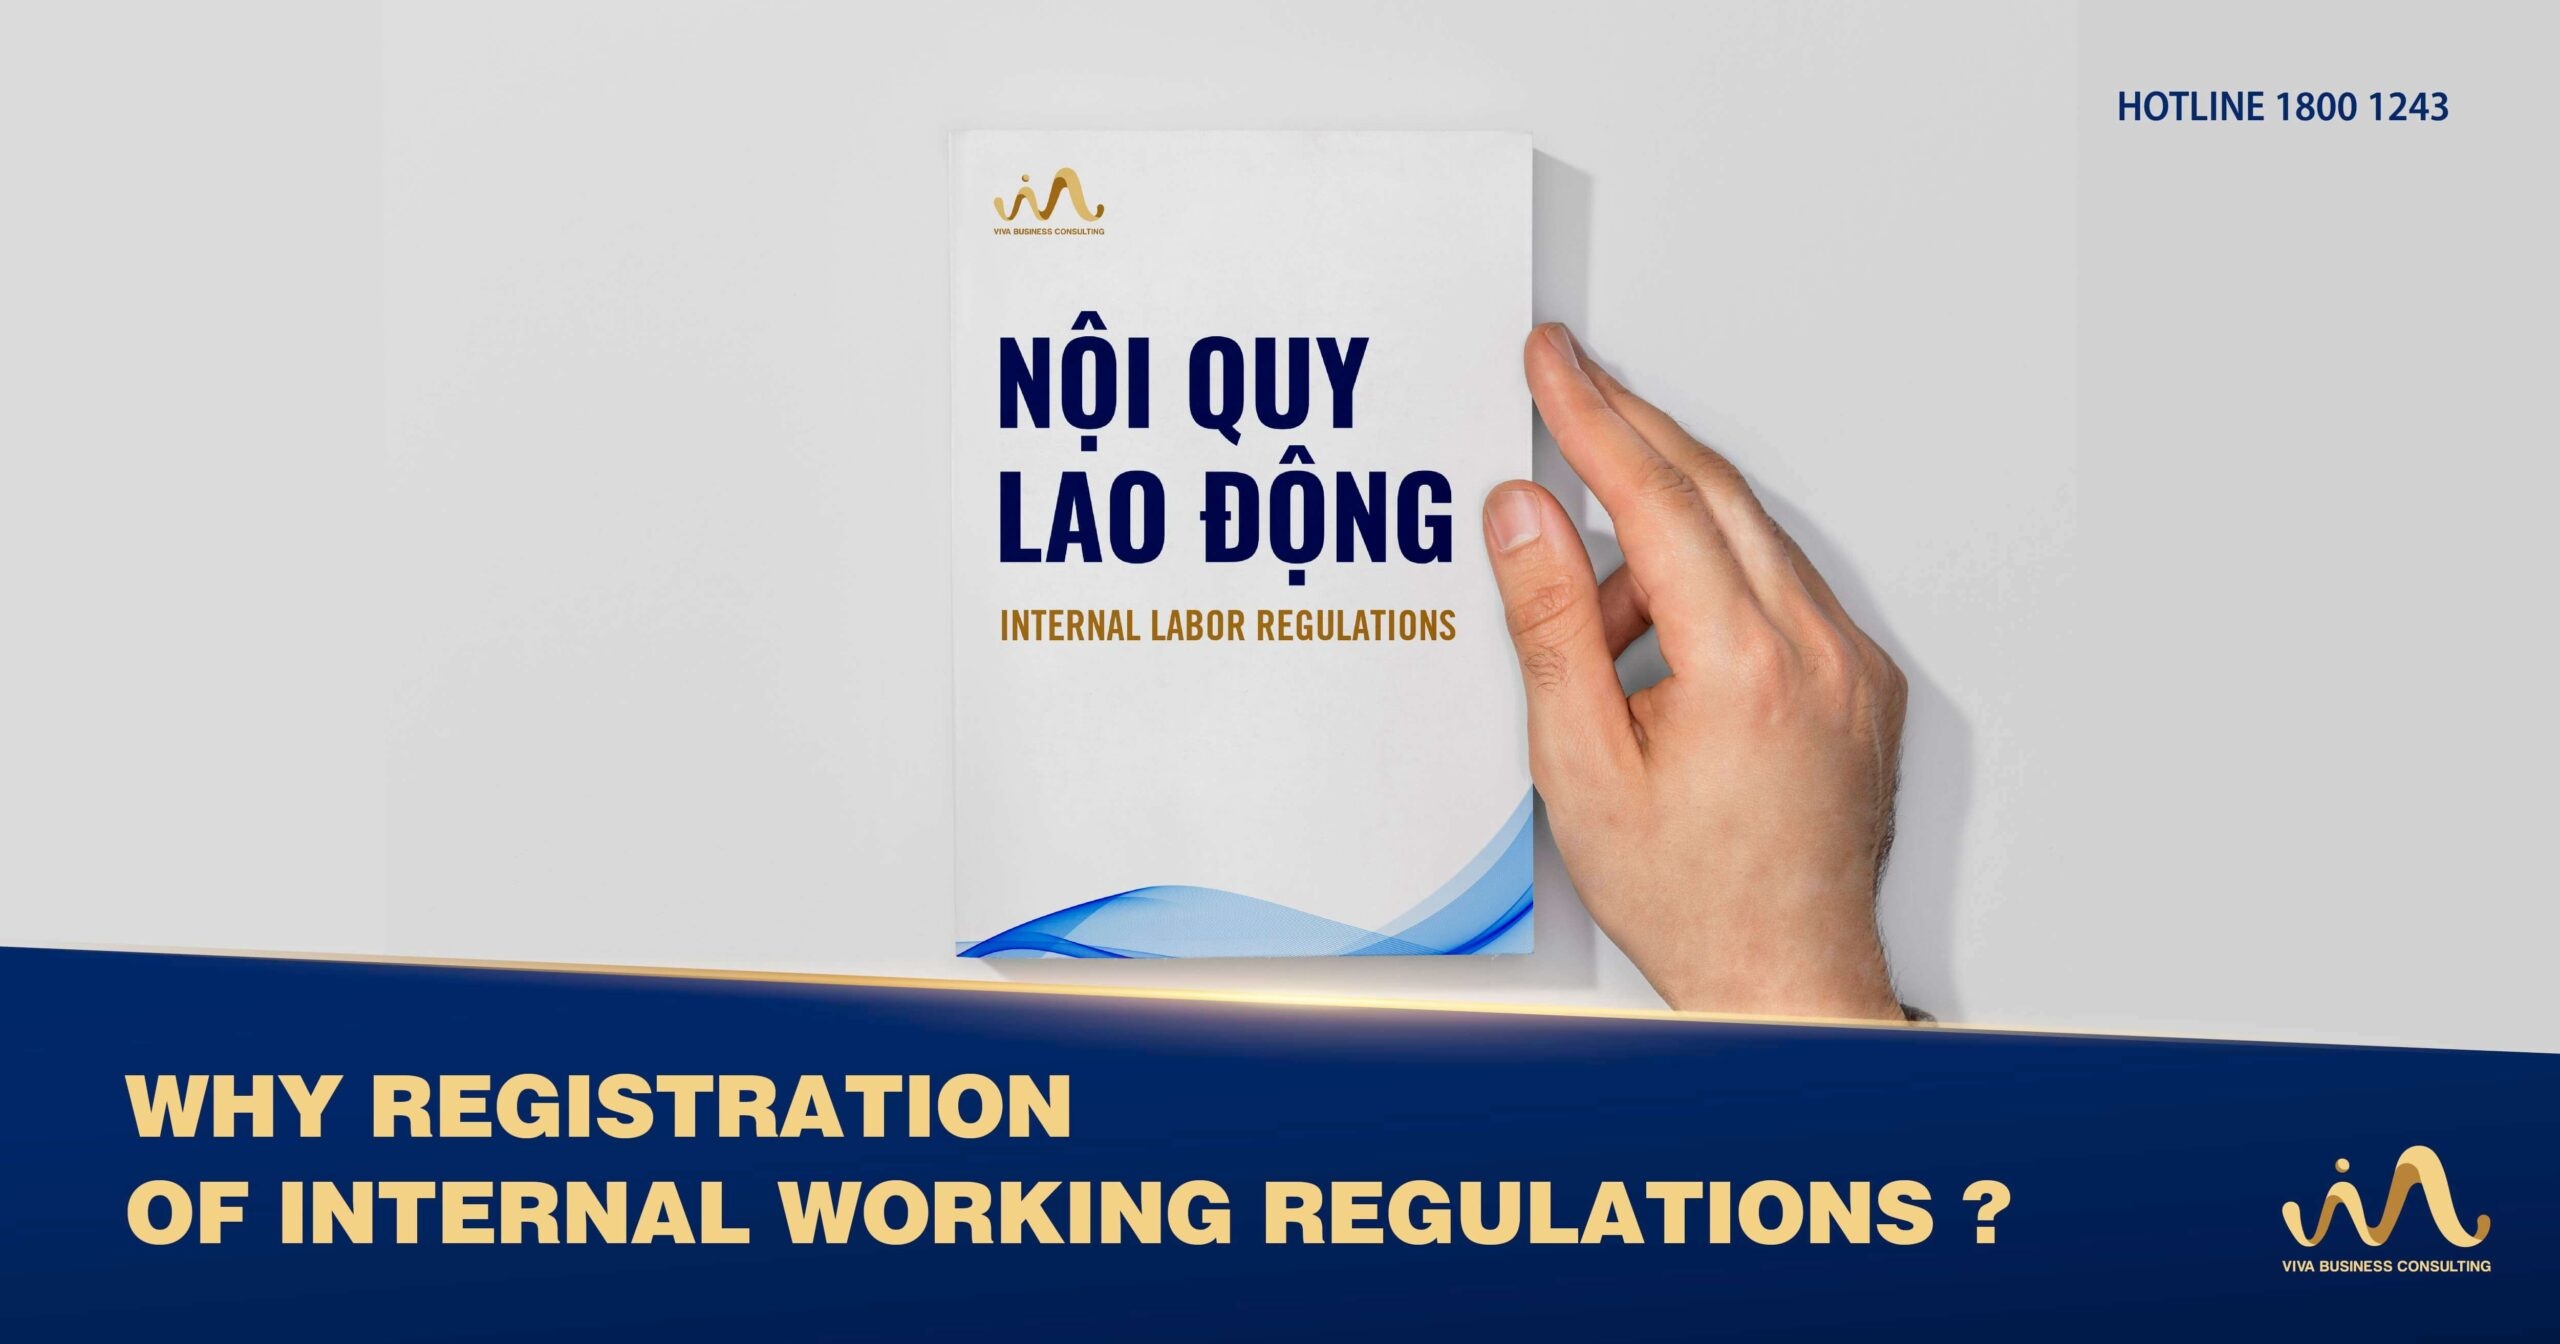 Registration of internal working regulations